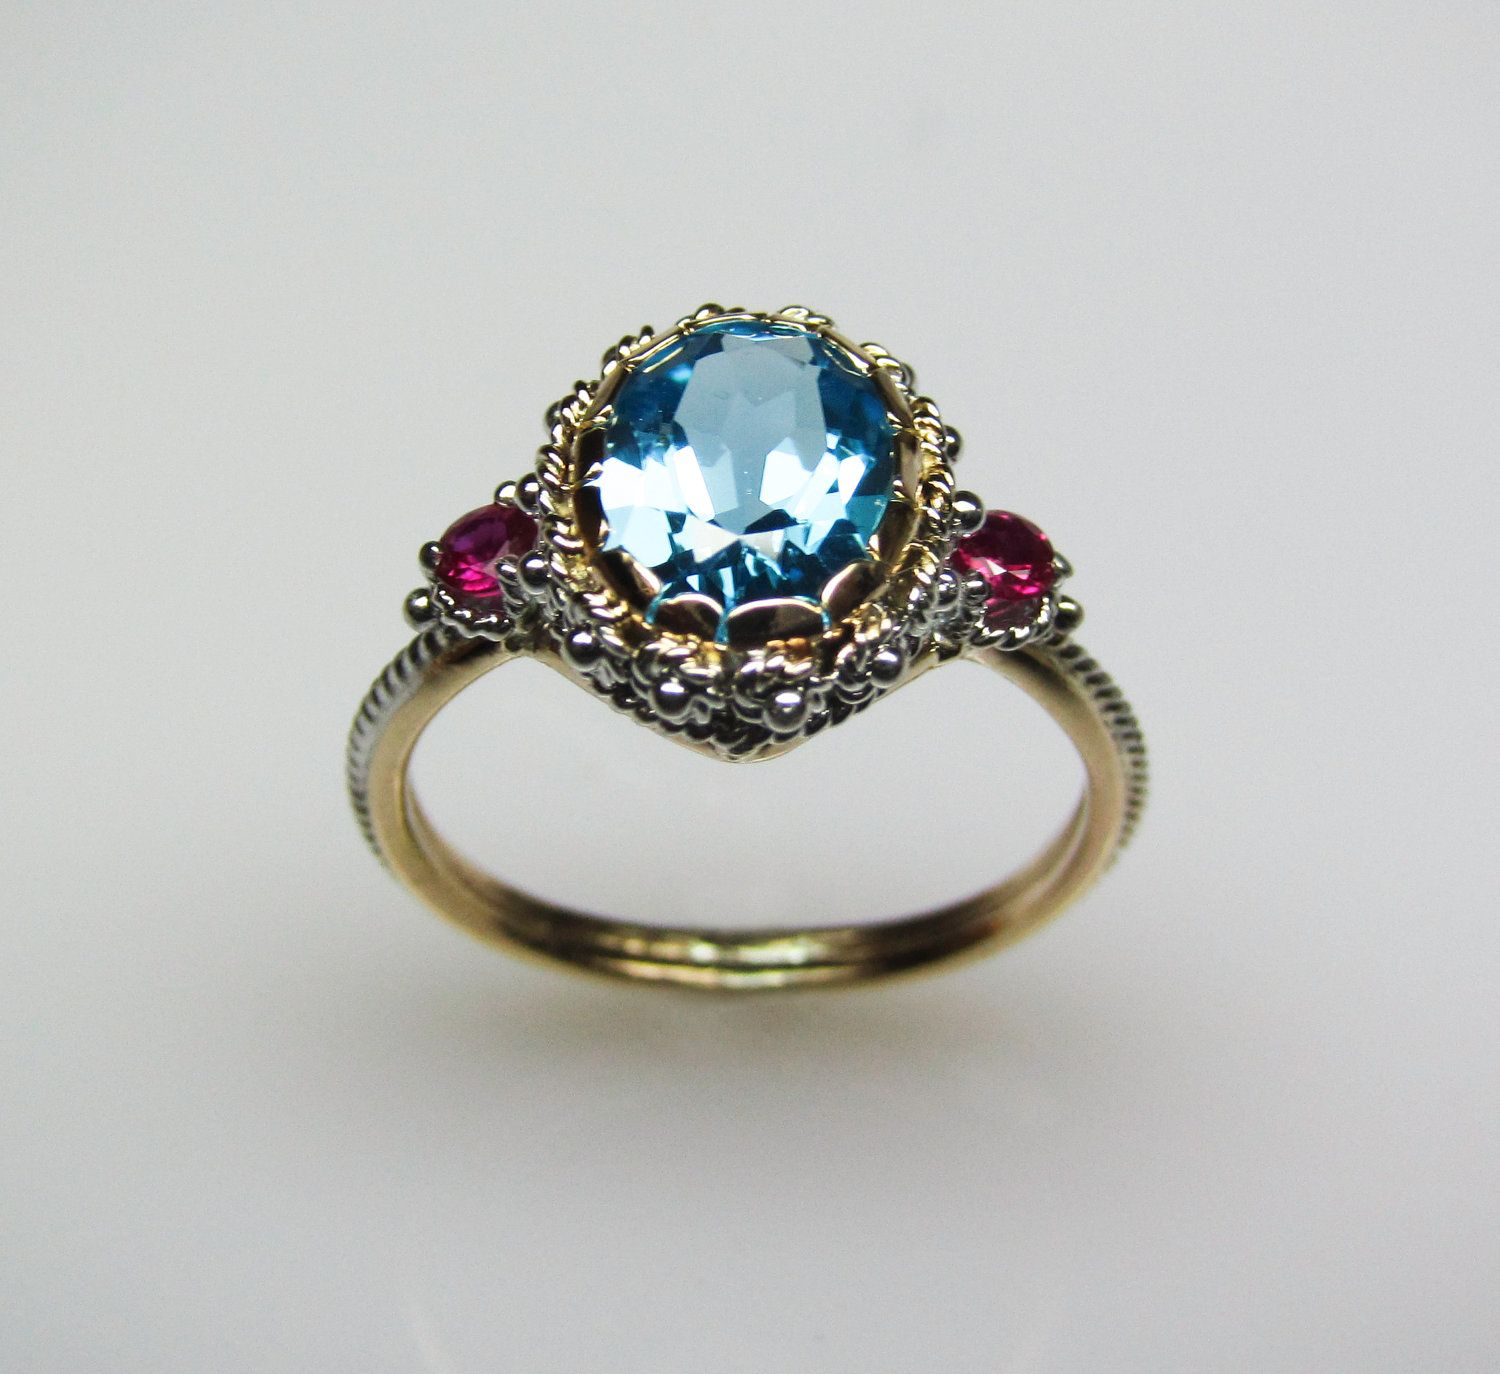 Funky vintage inspired ring beauty Blue Topaz & Ruby Ring in